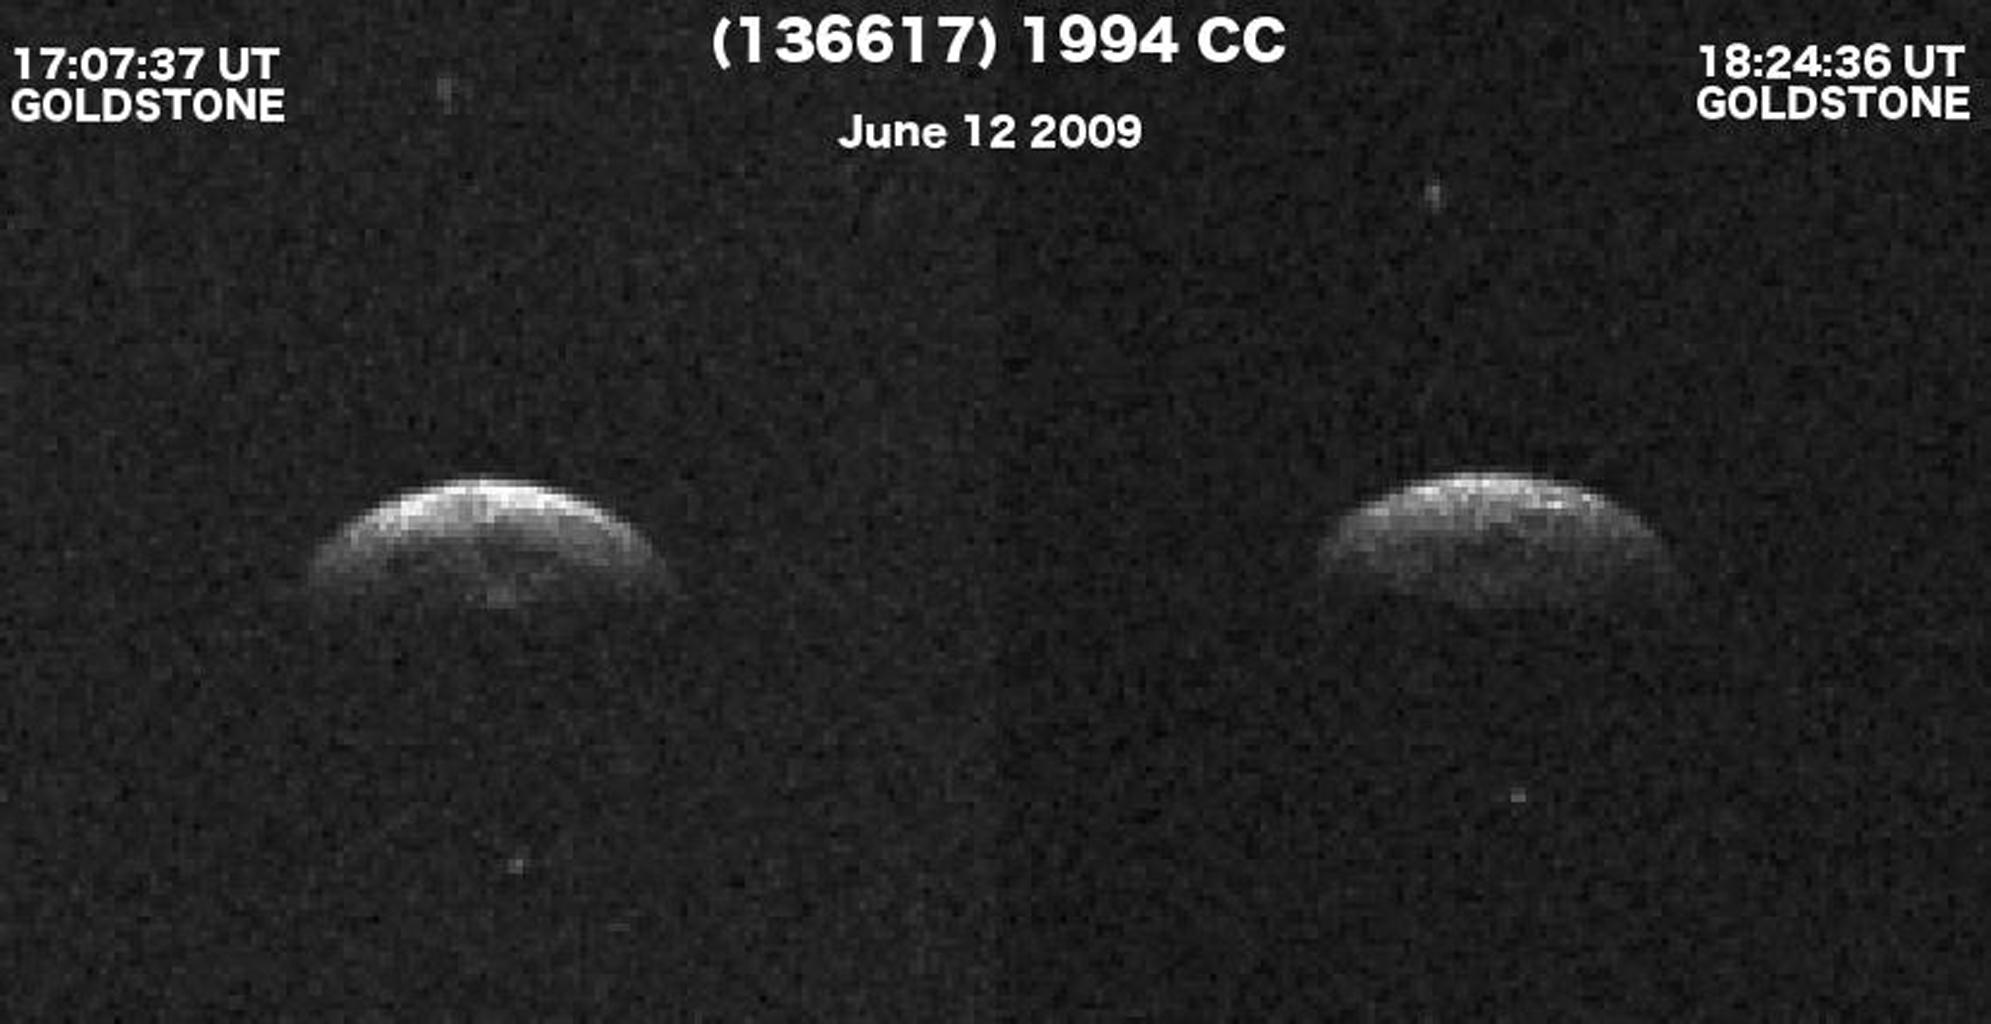 NASA's Deep Space Network, Goldstone radar images show triple asteroid 1994 CC, which consists of a central object approximately 700 meters (2,300 feet) in diameter and two smaller moons that orbit the central body. Animation available at the Photojournal